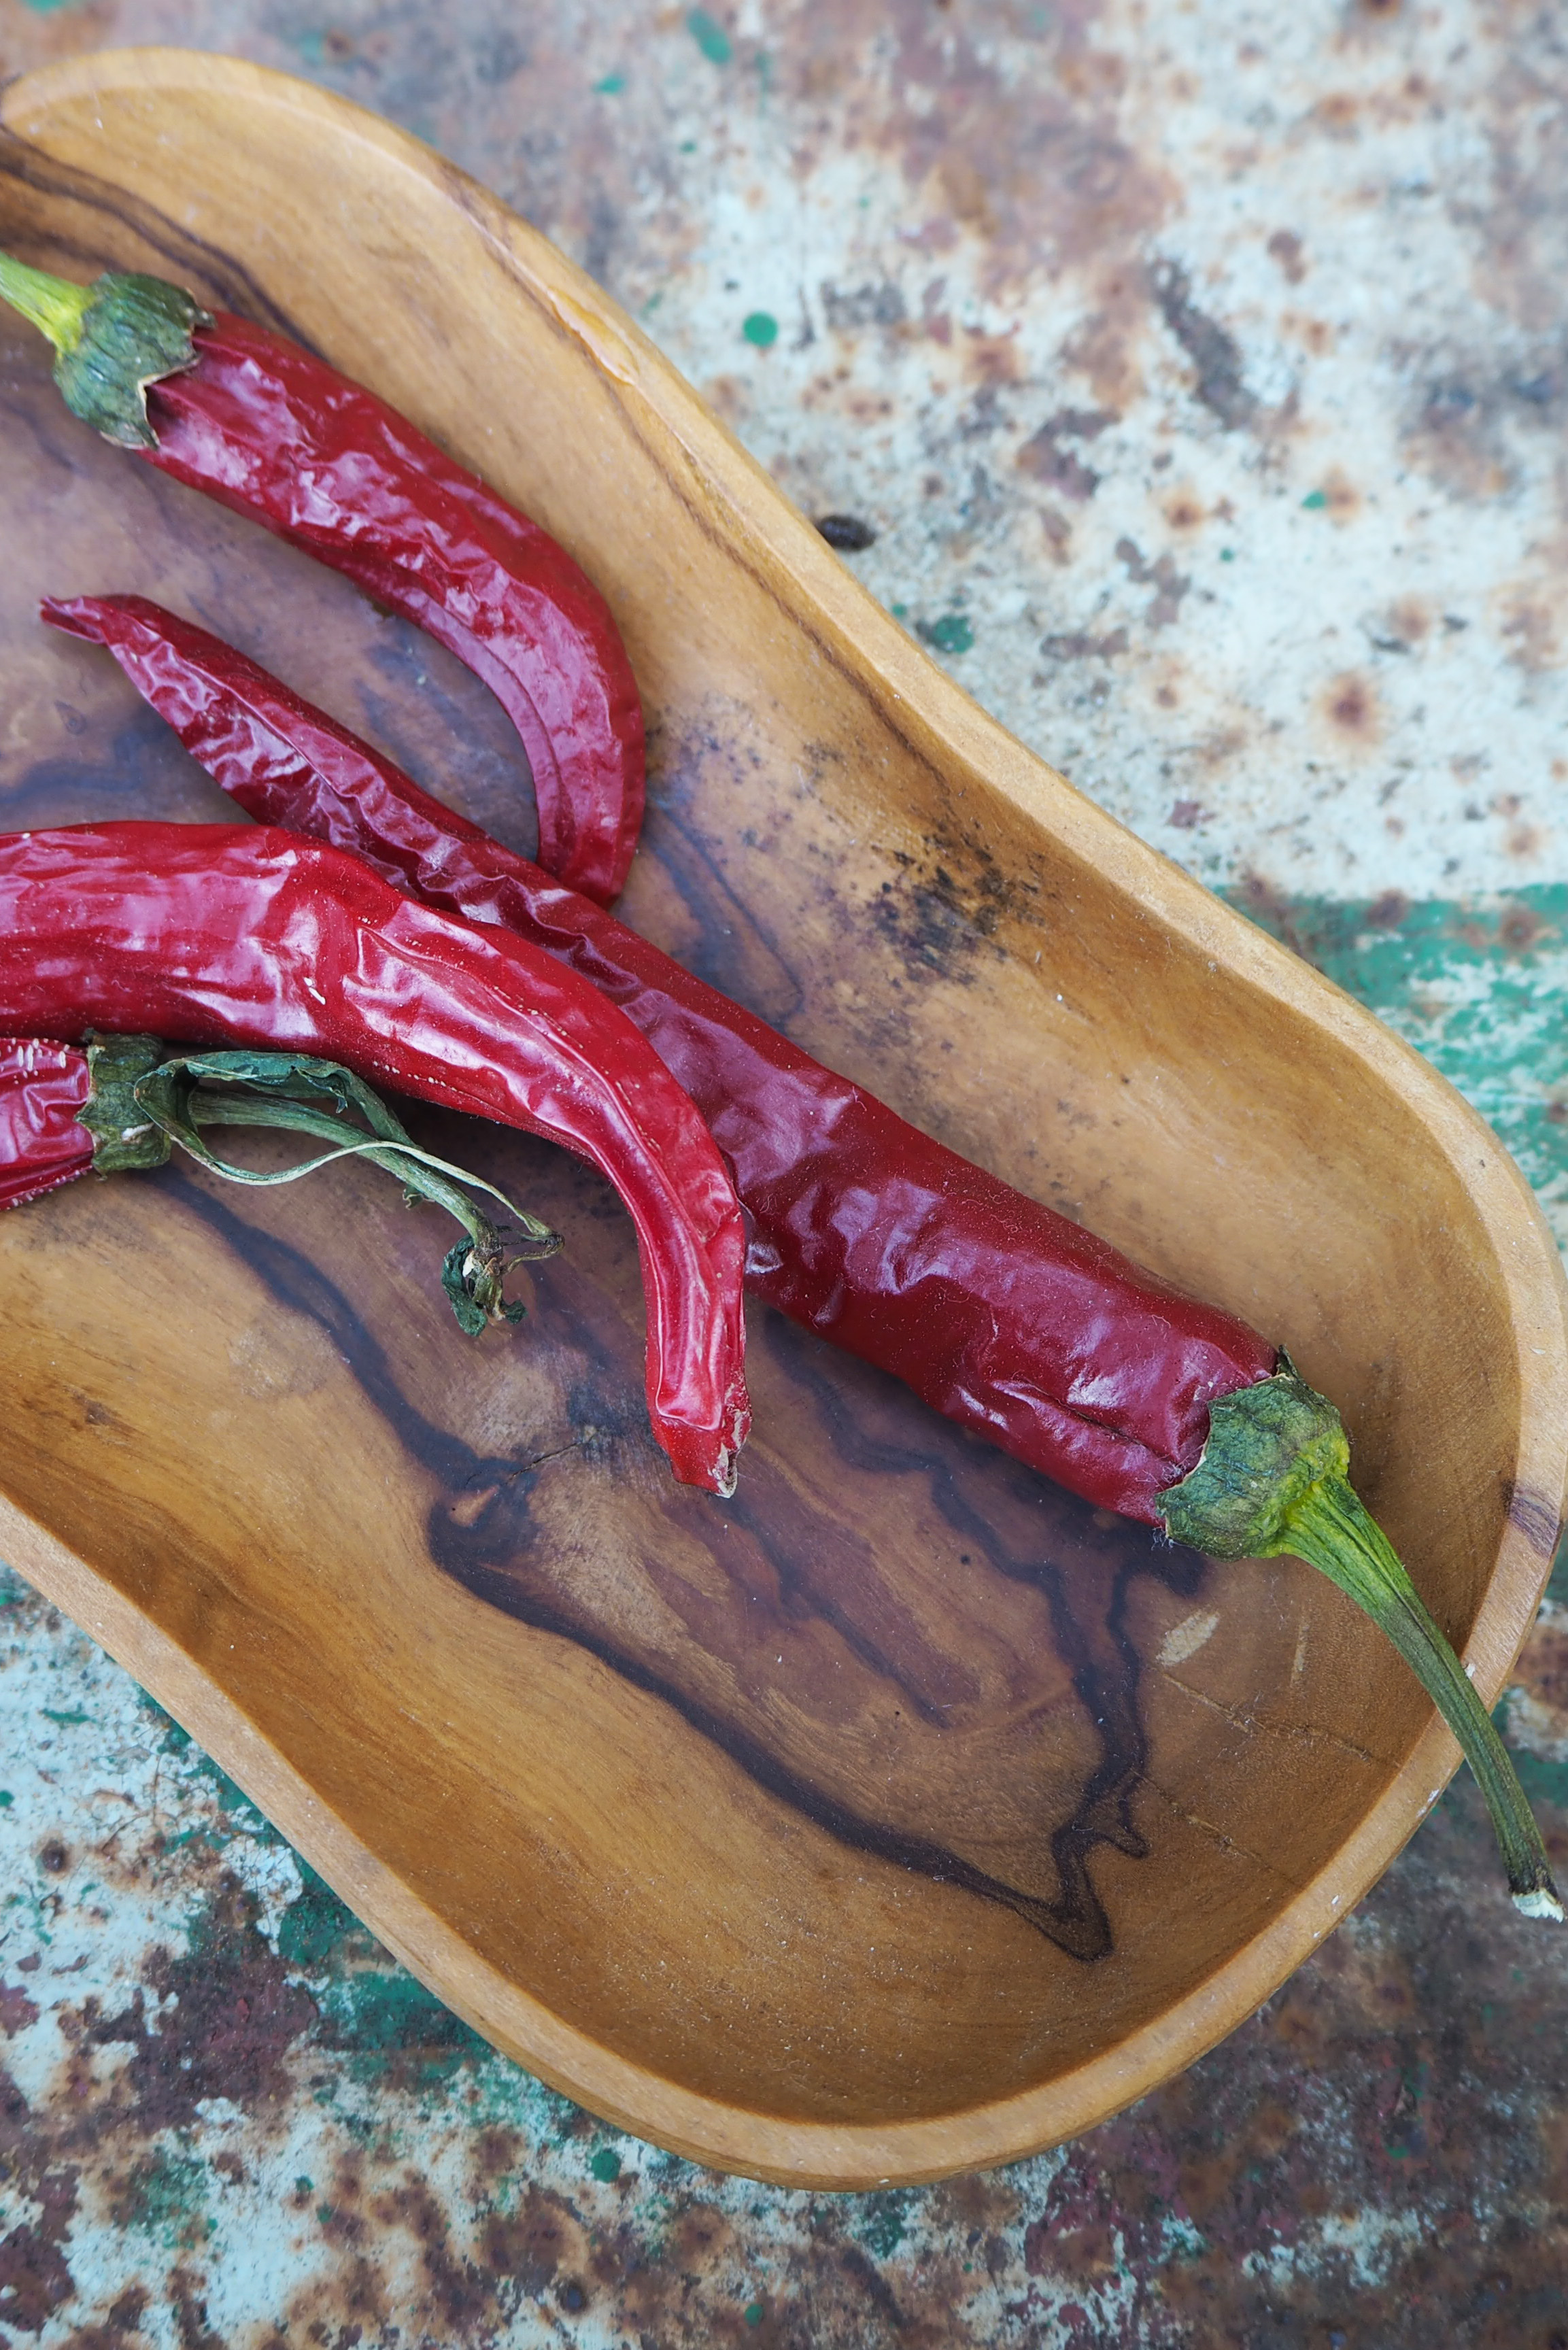 Homegrown and home-dried chillies